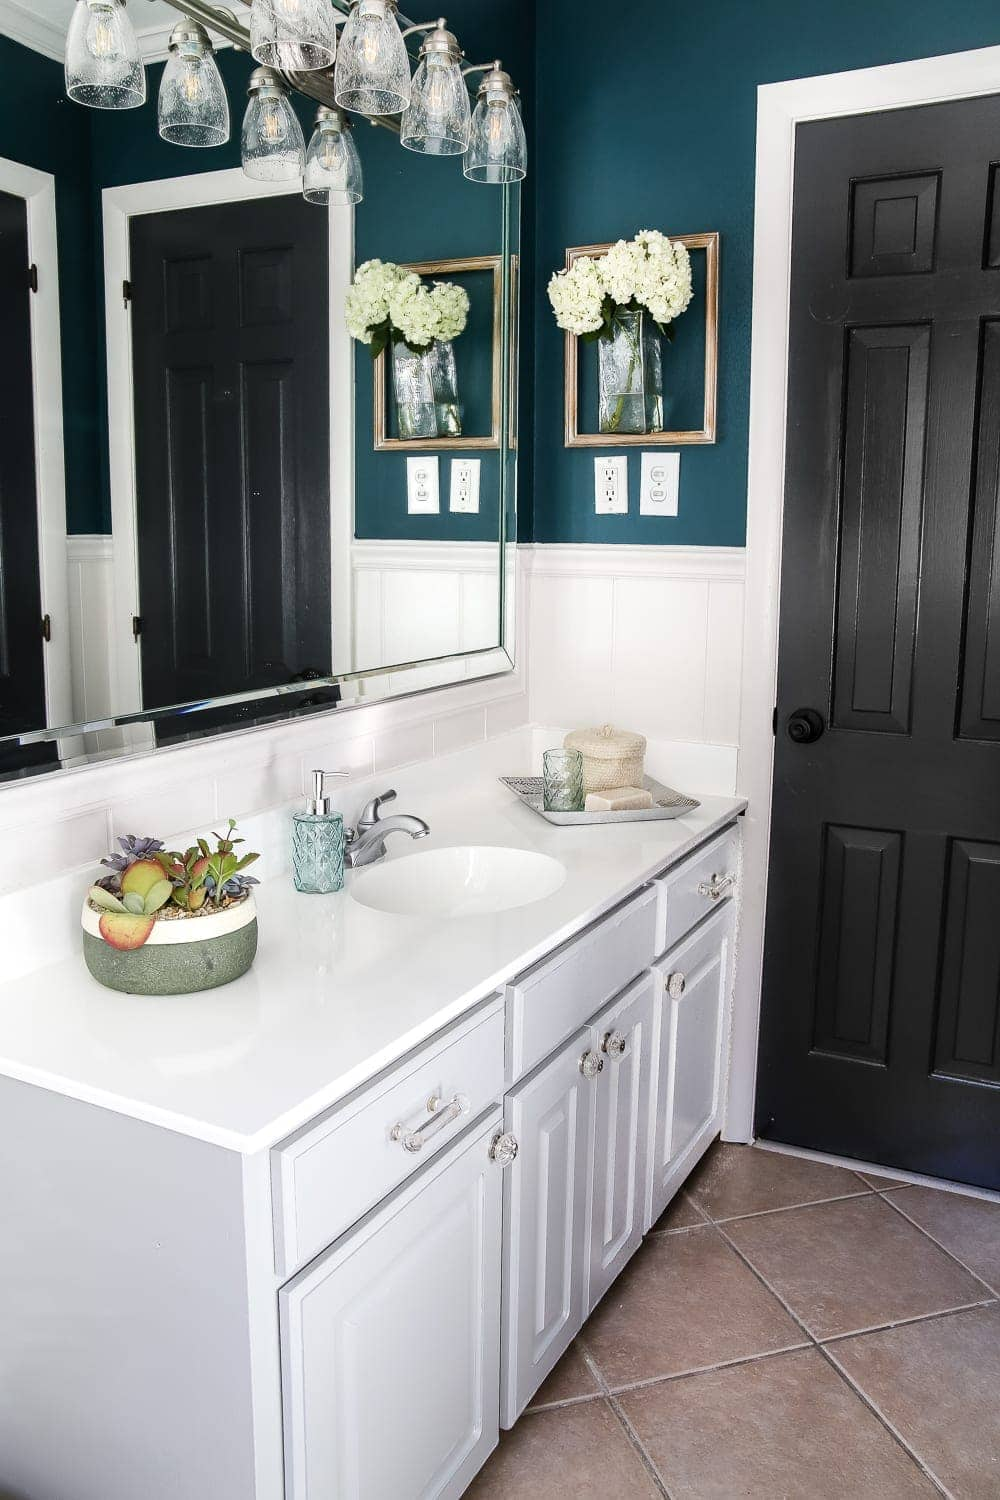 Painted Cabinet Bathroom Update | blesserhouse.com - A dated cabinet gets a refresh with Benjamin Moore Coventry Gray for an inexpensive bathroom update. #cabinetpainting #homeimprovement #bathroom